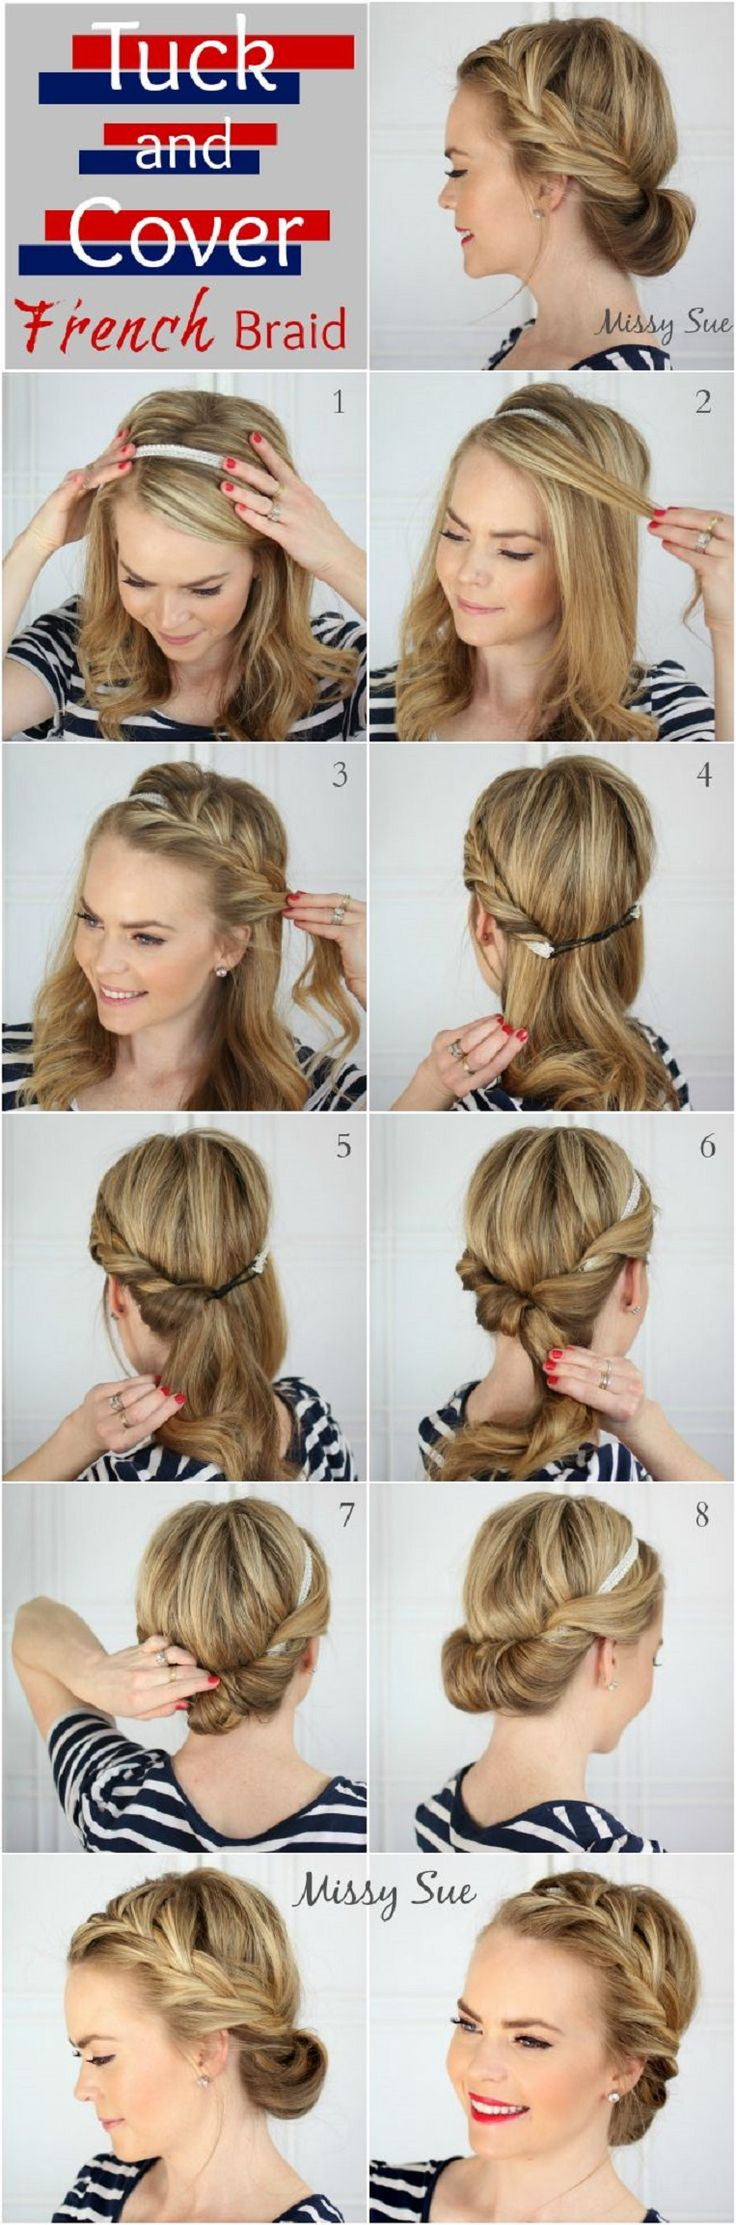 Pleasant 1000 Ideas About Easy Professional Hairstyles On Pinterest Hairstyles For Men Maxibearus